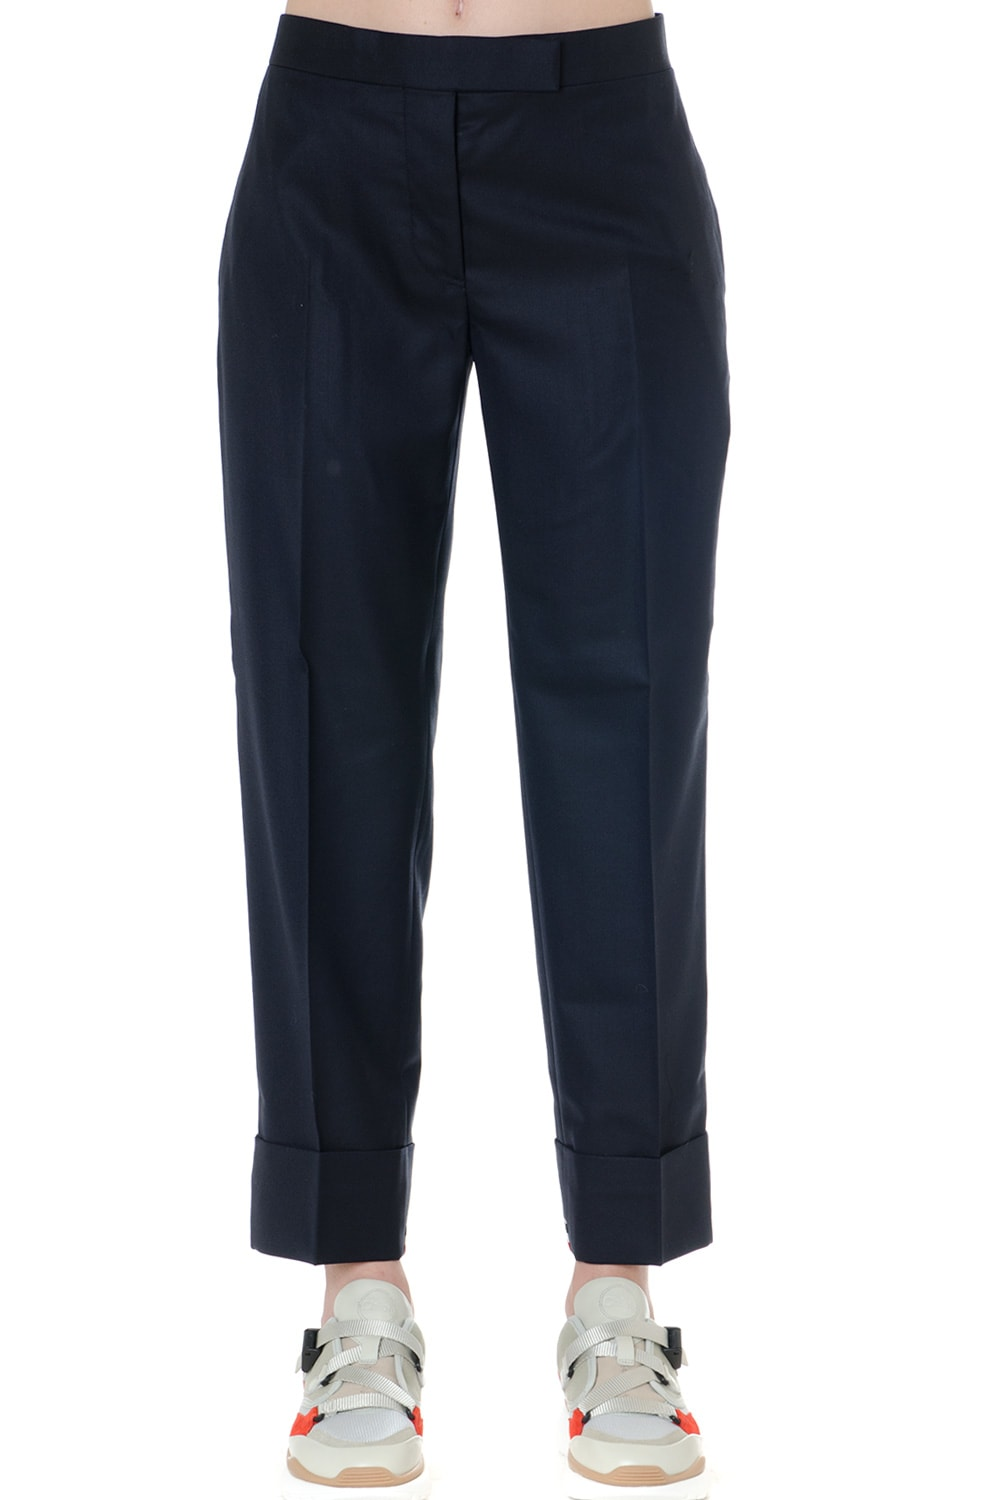 Thom Browne Pants In Navy Wool With Iconic Tricolor Trim